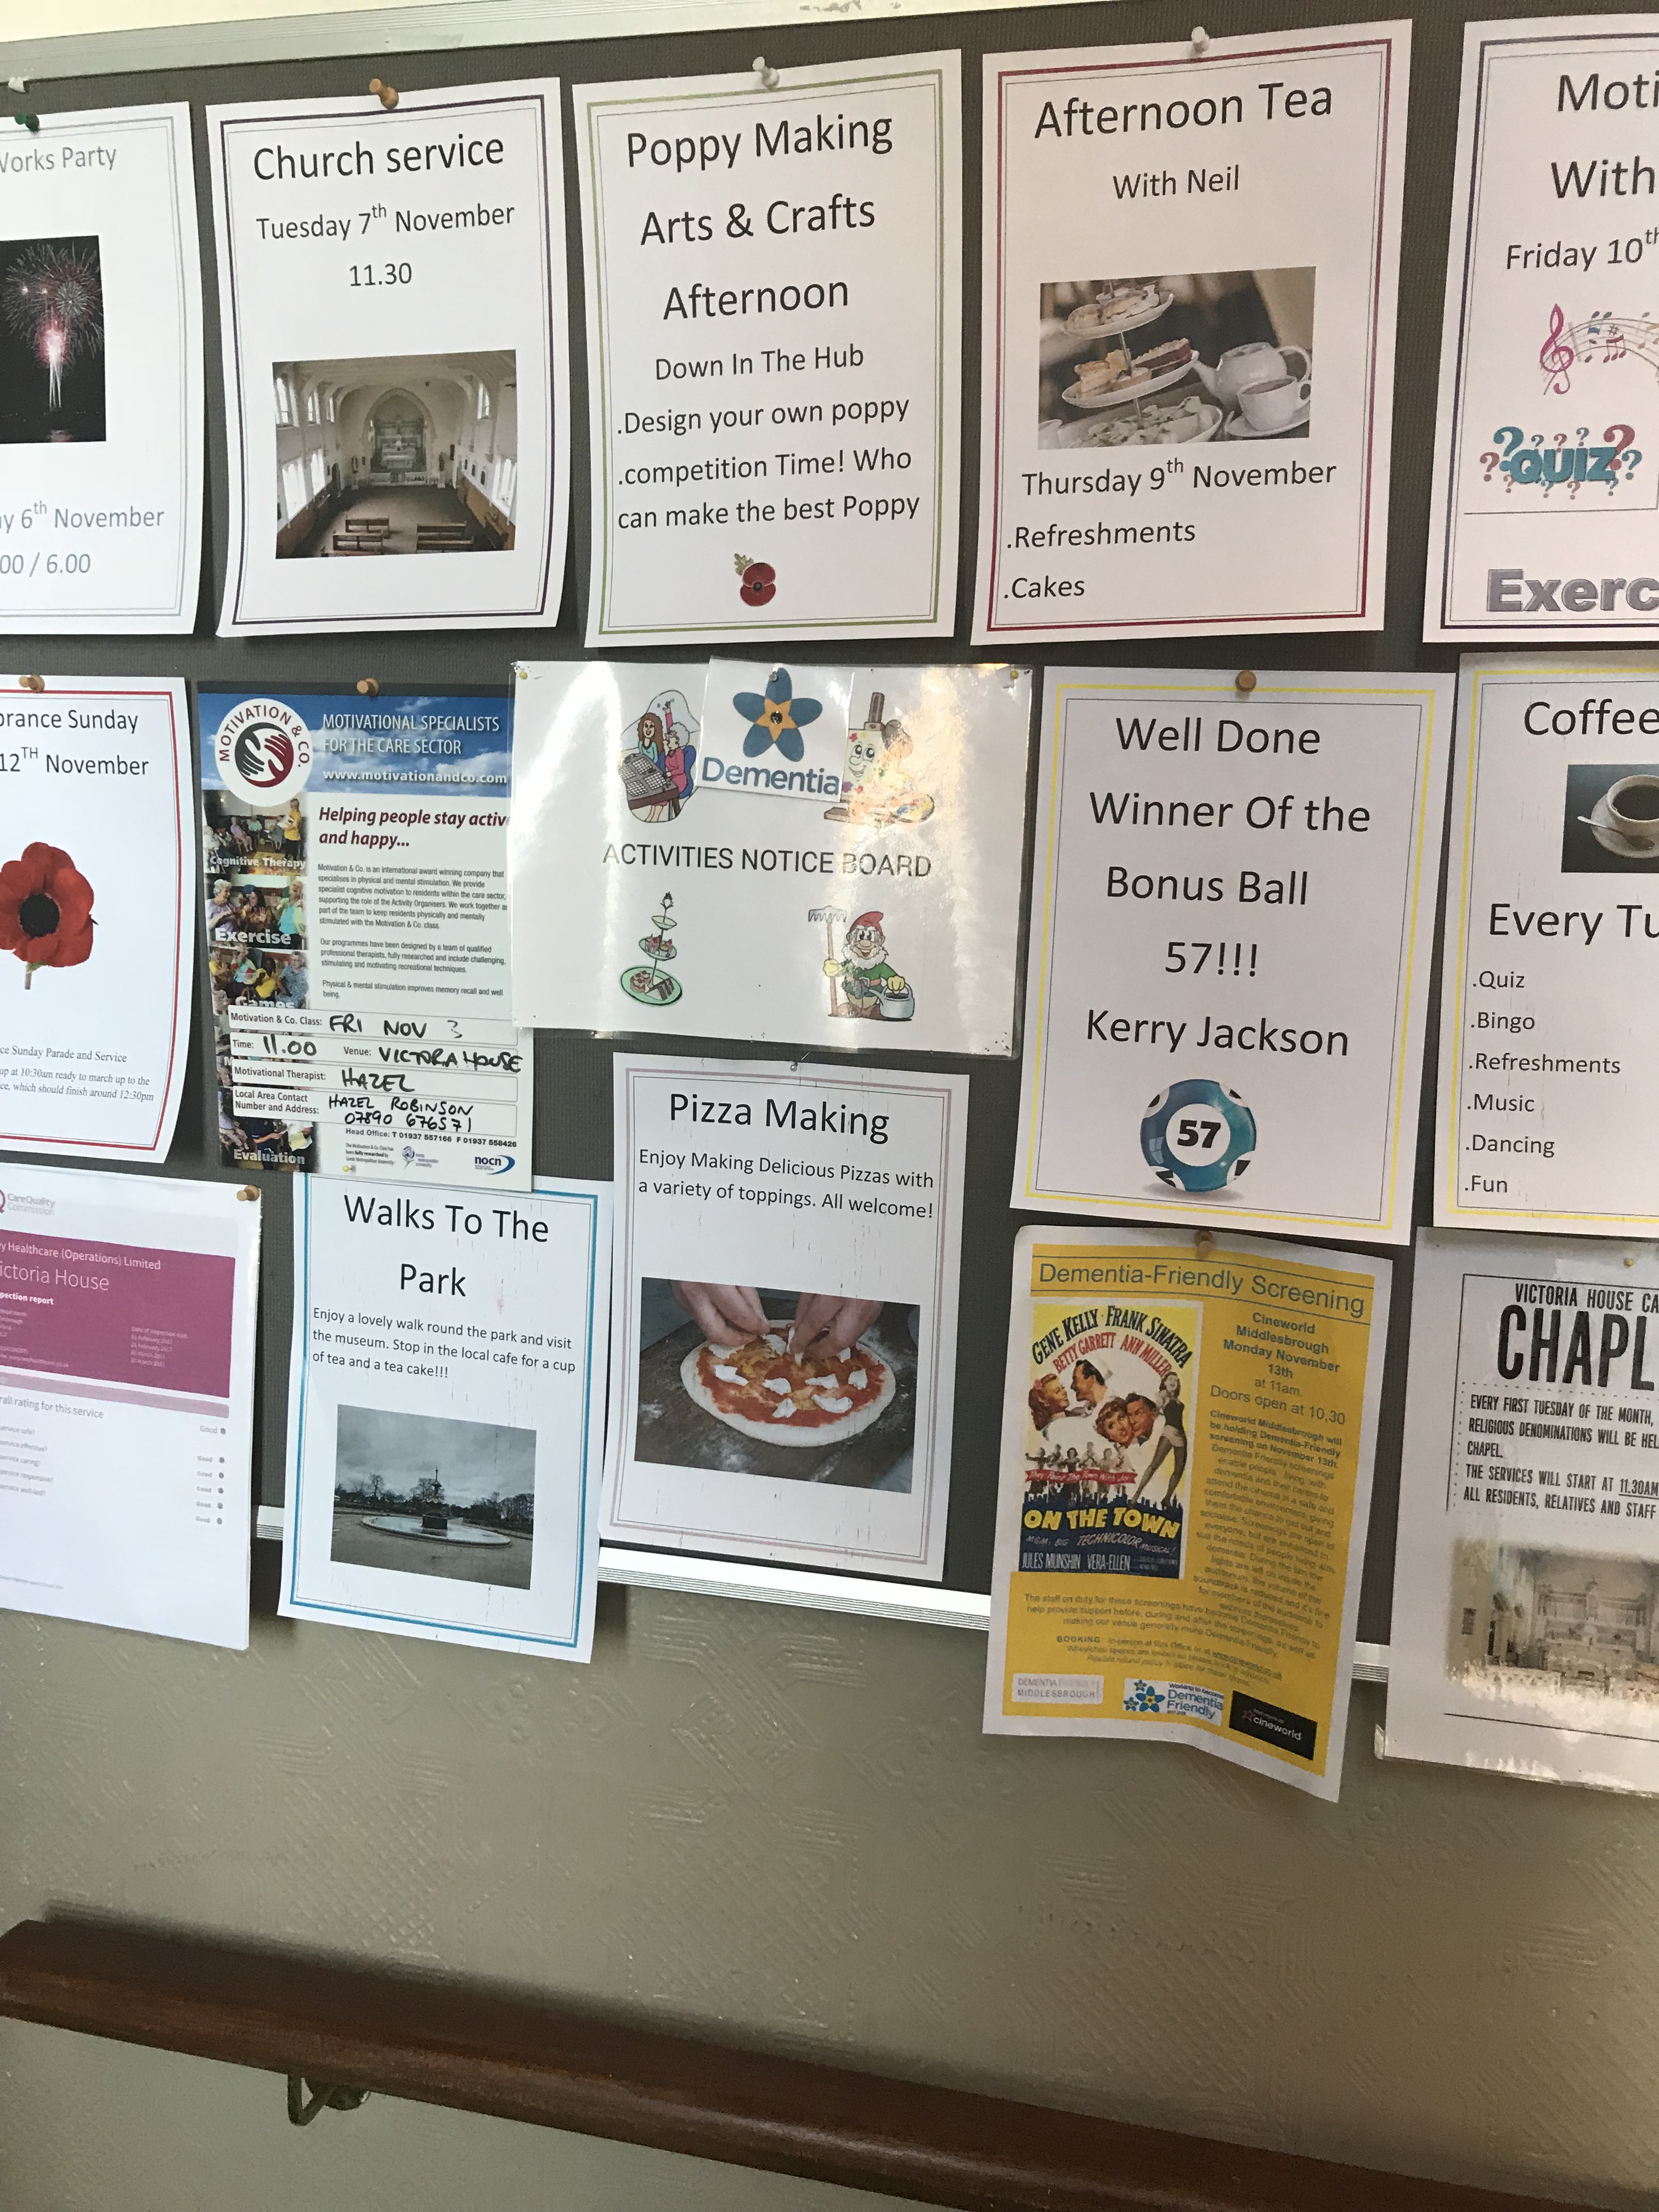 Activities Notice Board at Victoria House Care Centre Nov 2017: Key Healthcare is dedicated to caring for elderly residents in safe. We have multiple dementia care homes including our care home middlesbrough, our care home St. Helen and care home saltburn. We excel in monitoring and improving care levels.